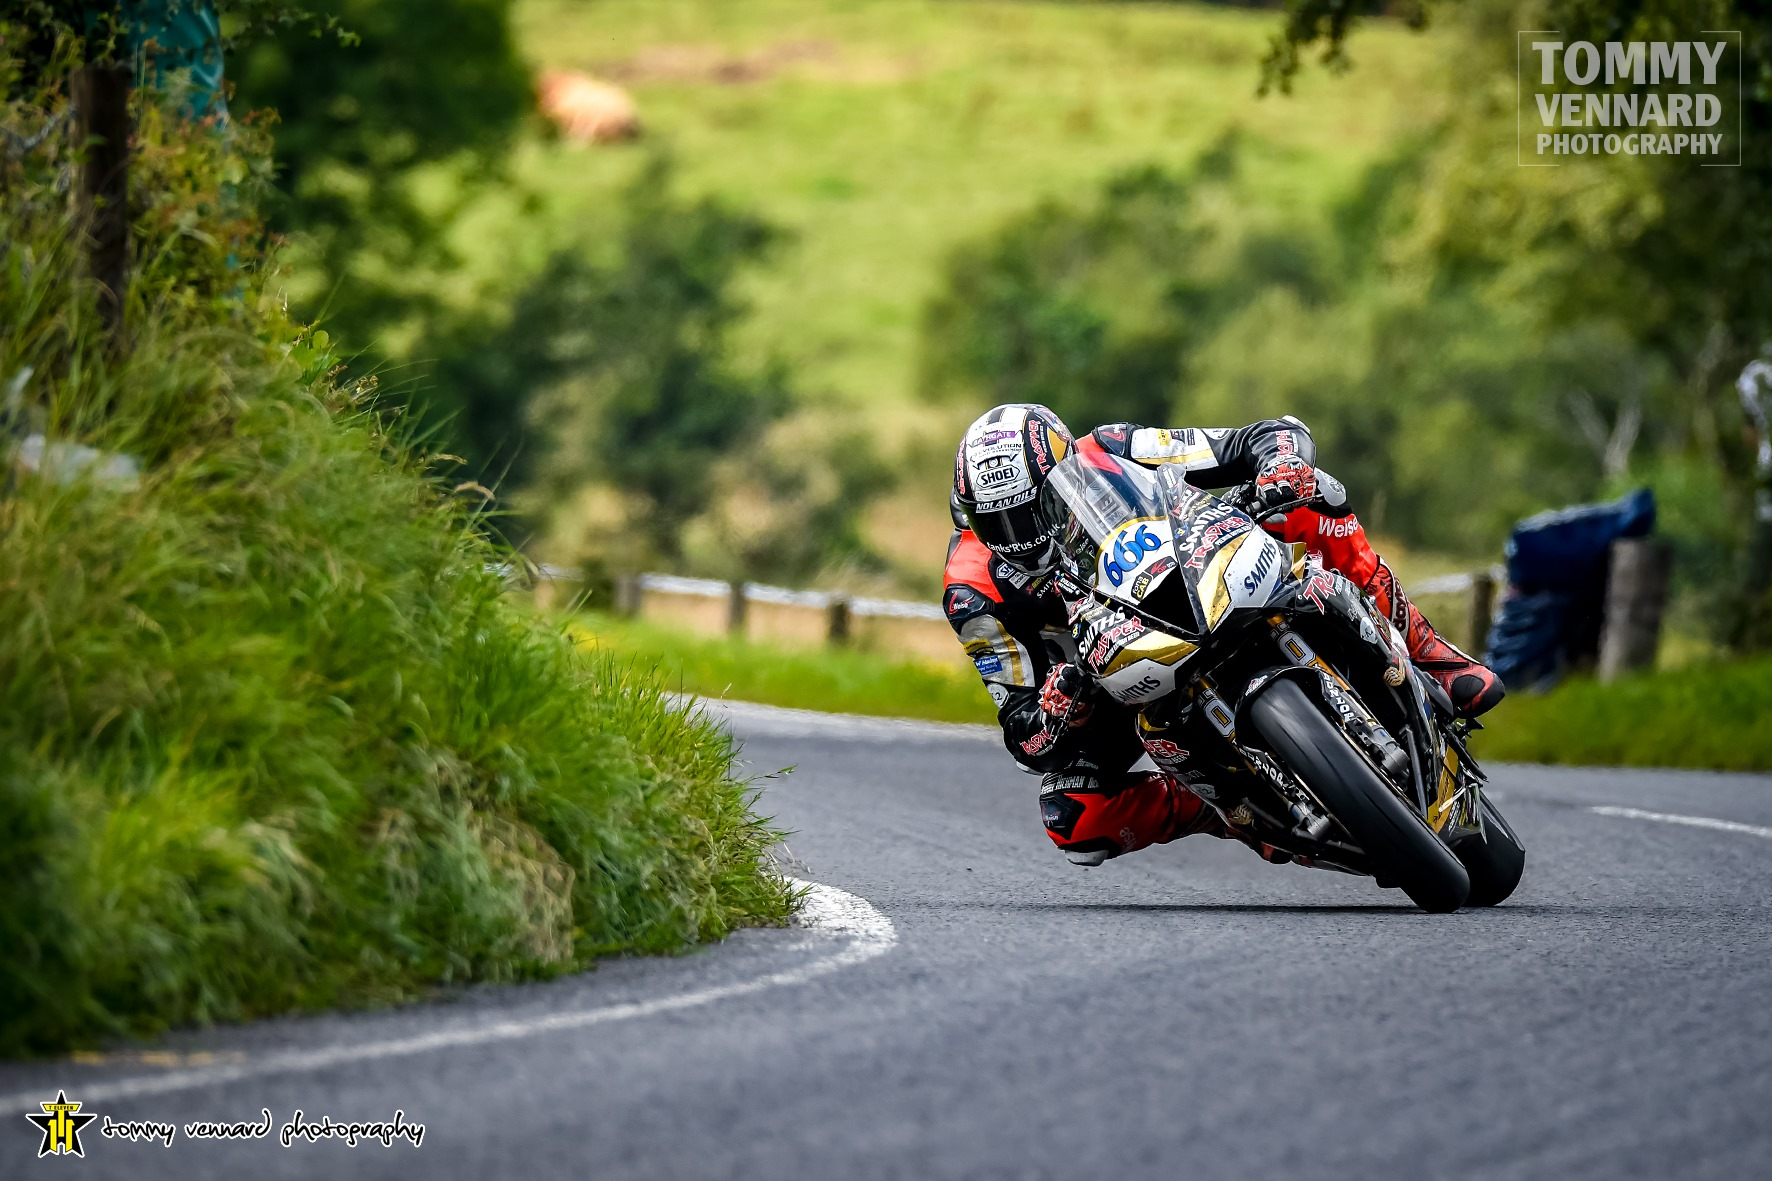 FonaCAB Ulster Grand Prix: Middleweight Class Treble For Hickman After Pulsating Skegness Raceway Supersport Encounter